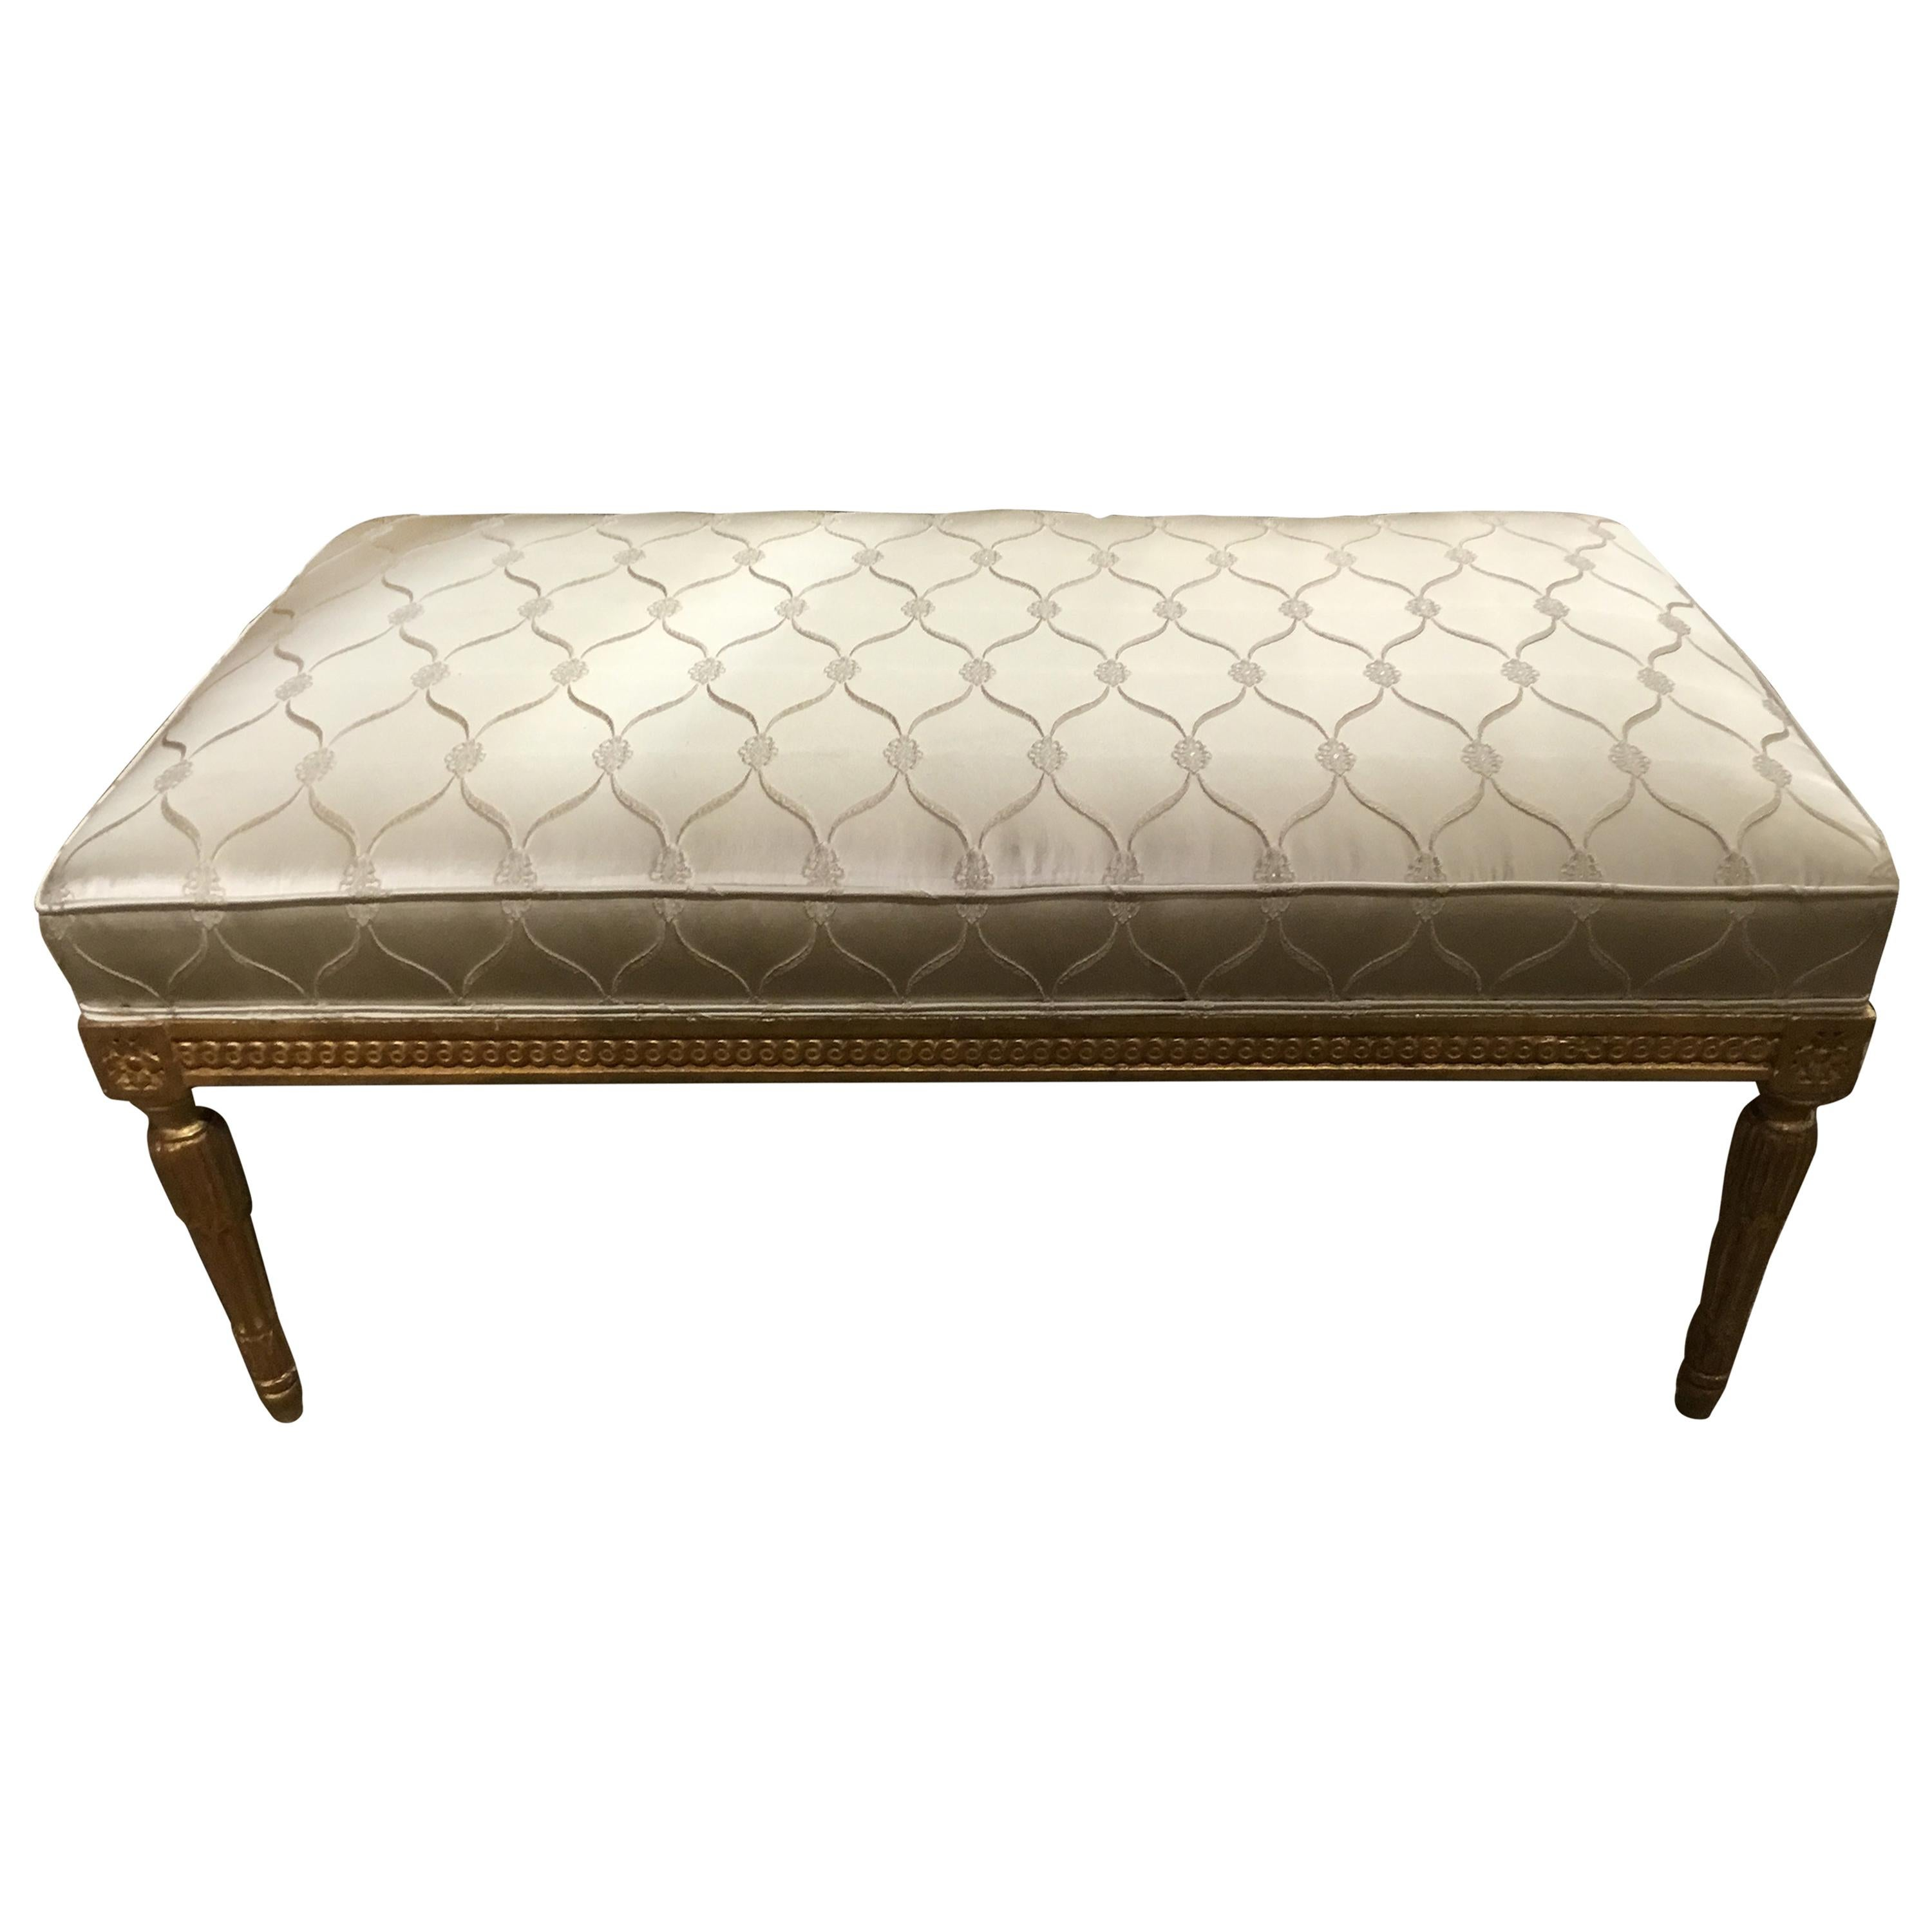 Giltwood Louis XVI Style Bench with Silk Upholstery